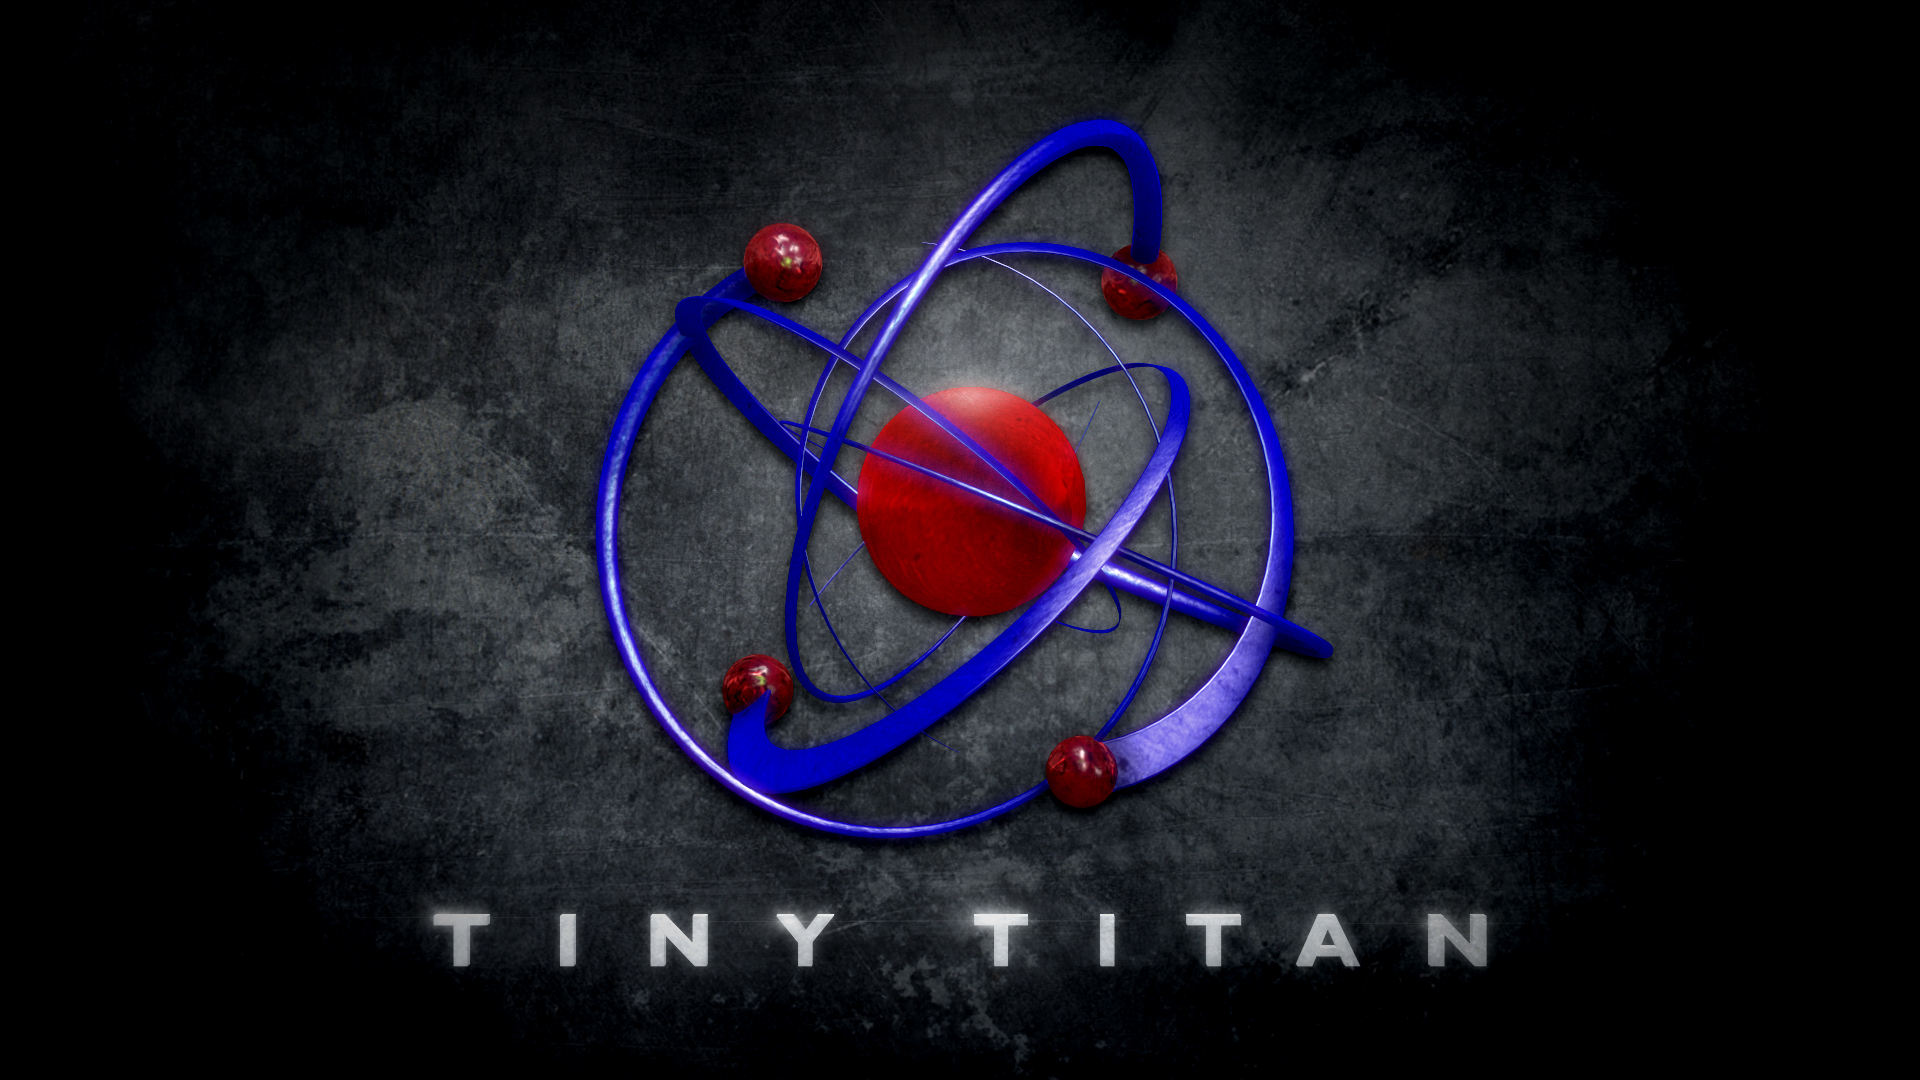 Atheist atom symbol image collections symbol and sign ideas the atom logo hd wallpaper collection 10 wallpapers atheism atoms wallpapers hd desktop and mobile backgrounds voltagebd Choice Image